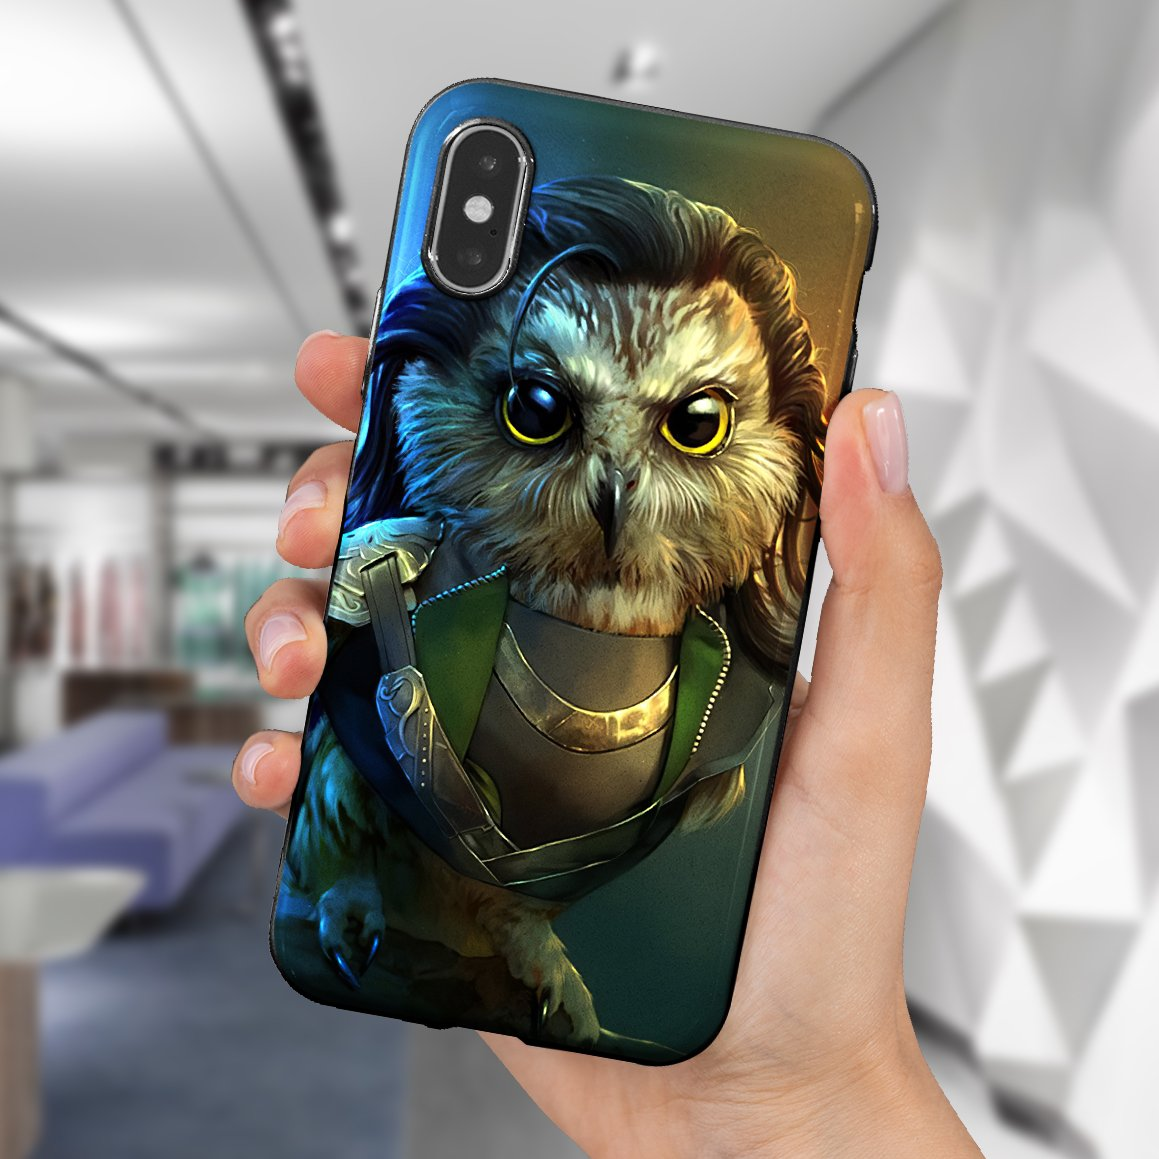 The Owlvengers phone case 5